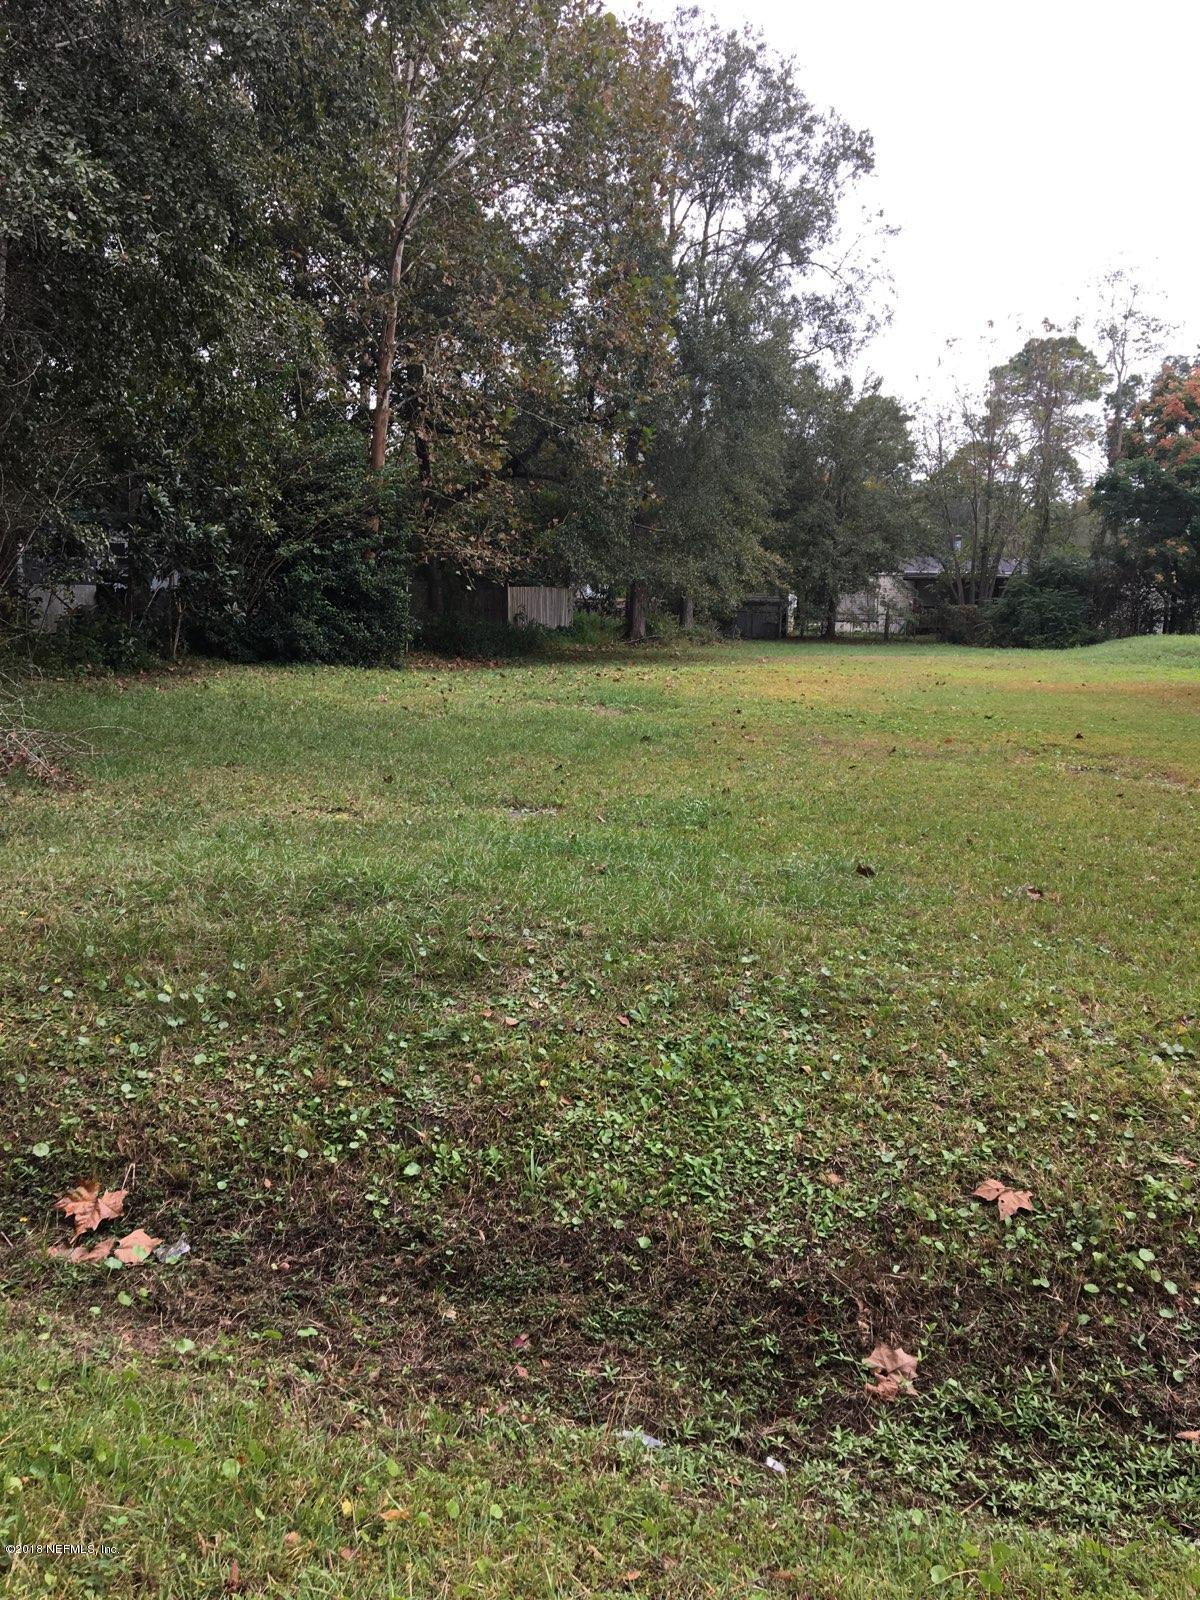 0 NOROAD, JACKSONVILLE, FLORIDA 32210, ,Vacant land,For sale,NOROAD,965263